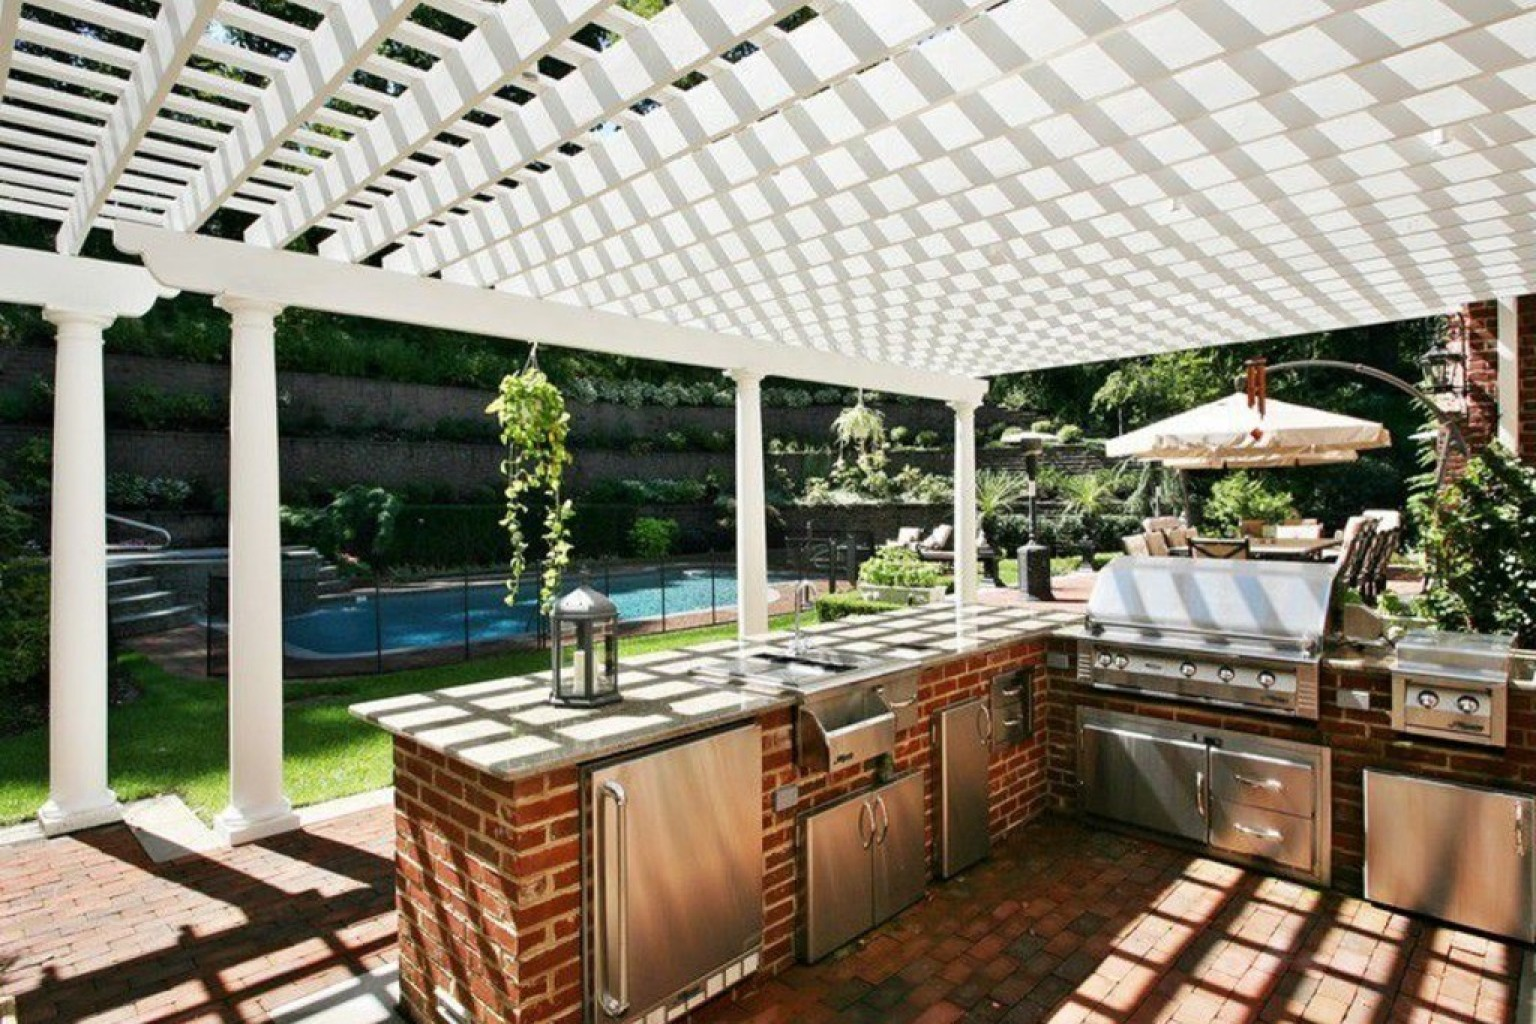 14 Incredible Outdoor Kitchens That Go Way Beyond Grills (PHOTOS) | HuffPost